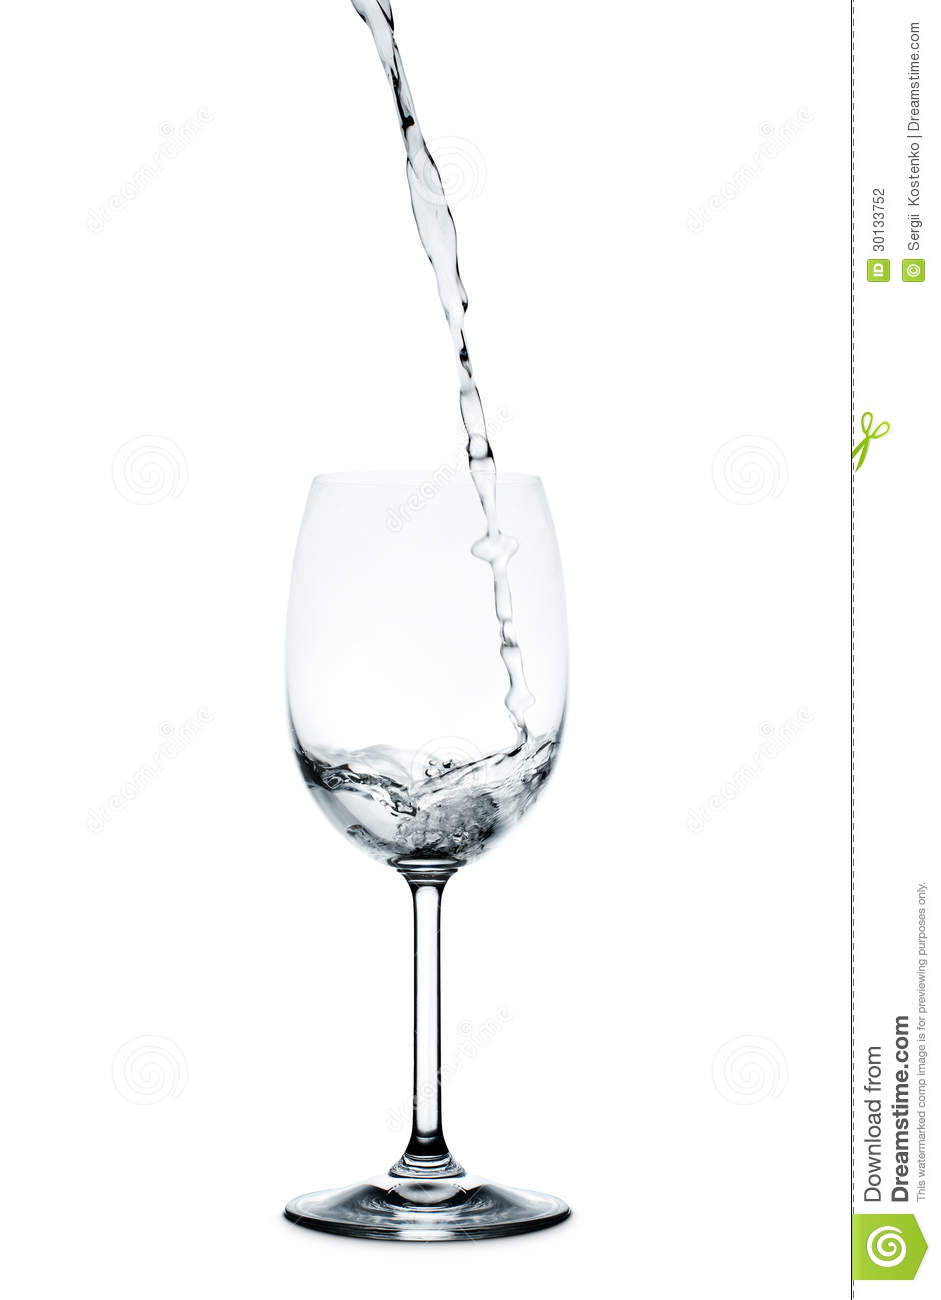 Image Result For Purified Water